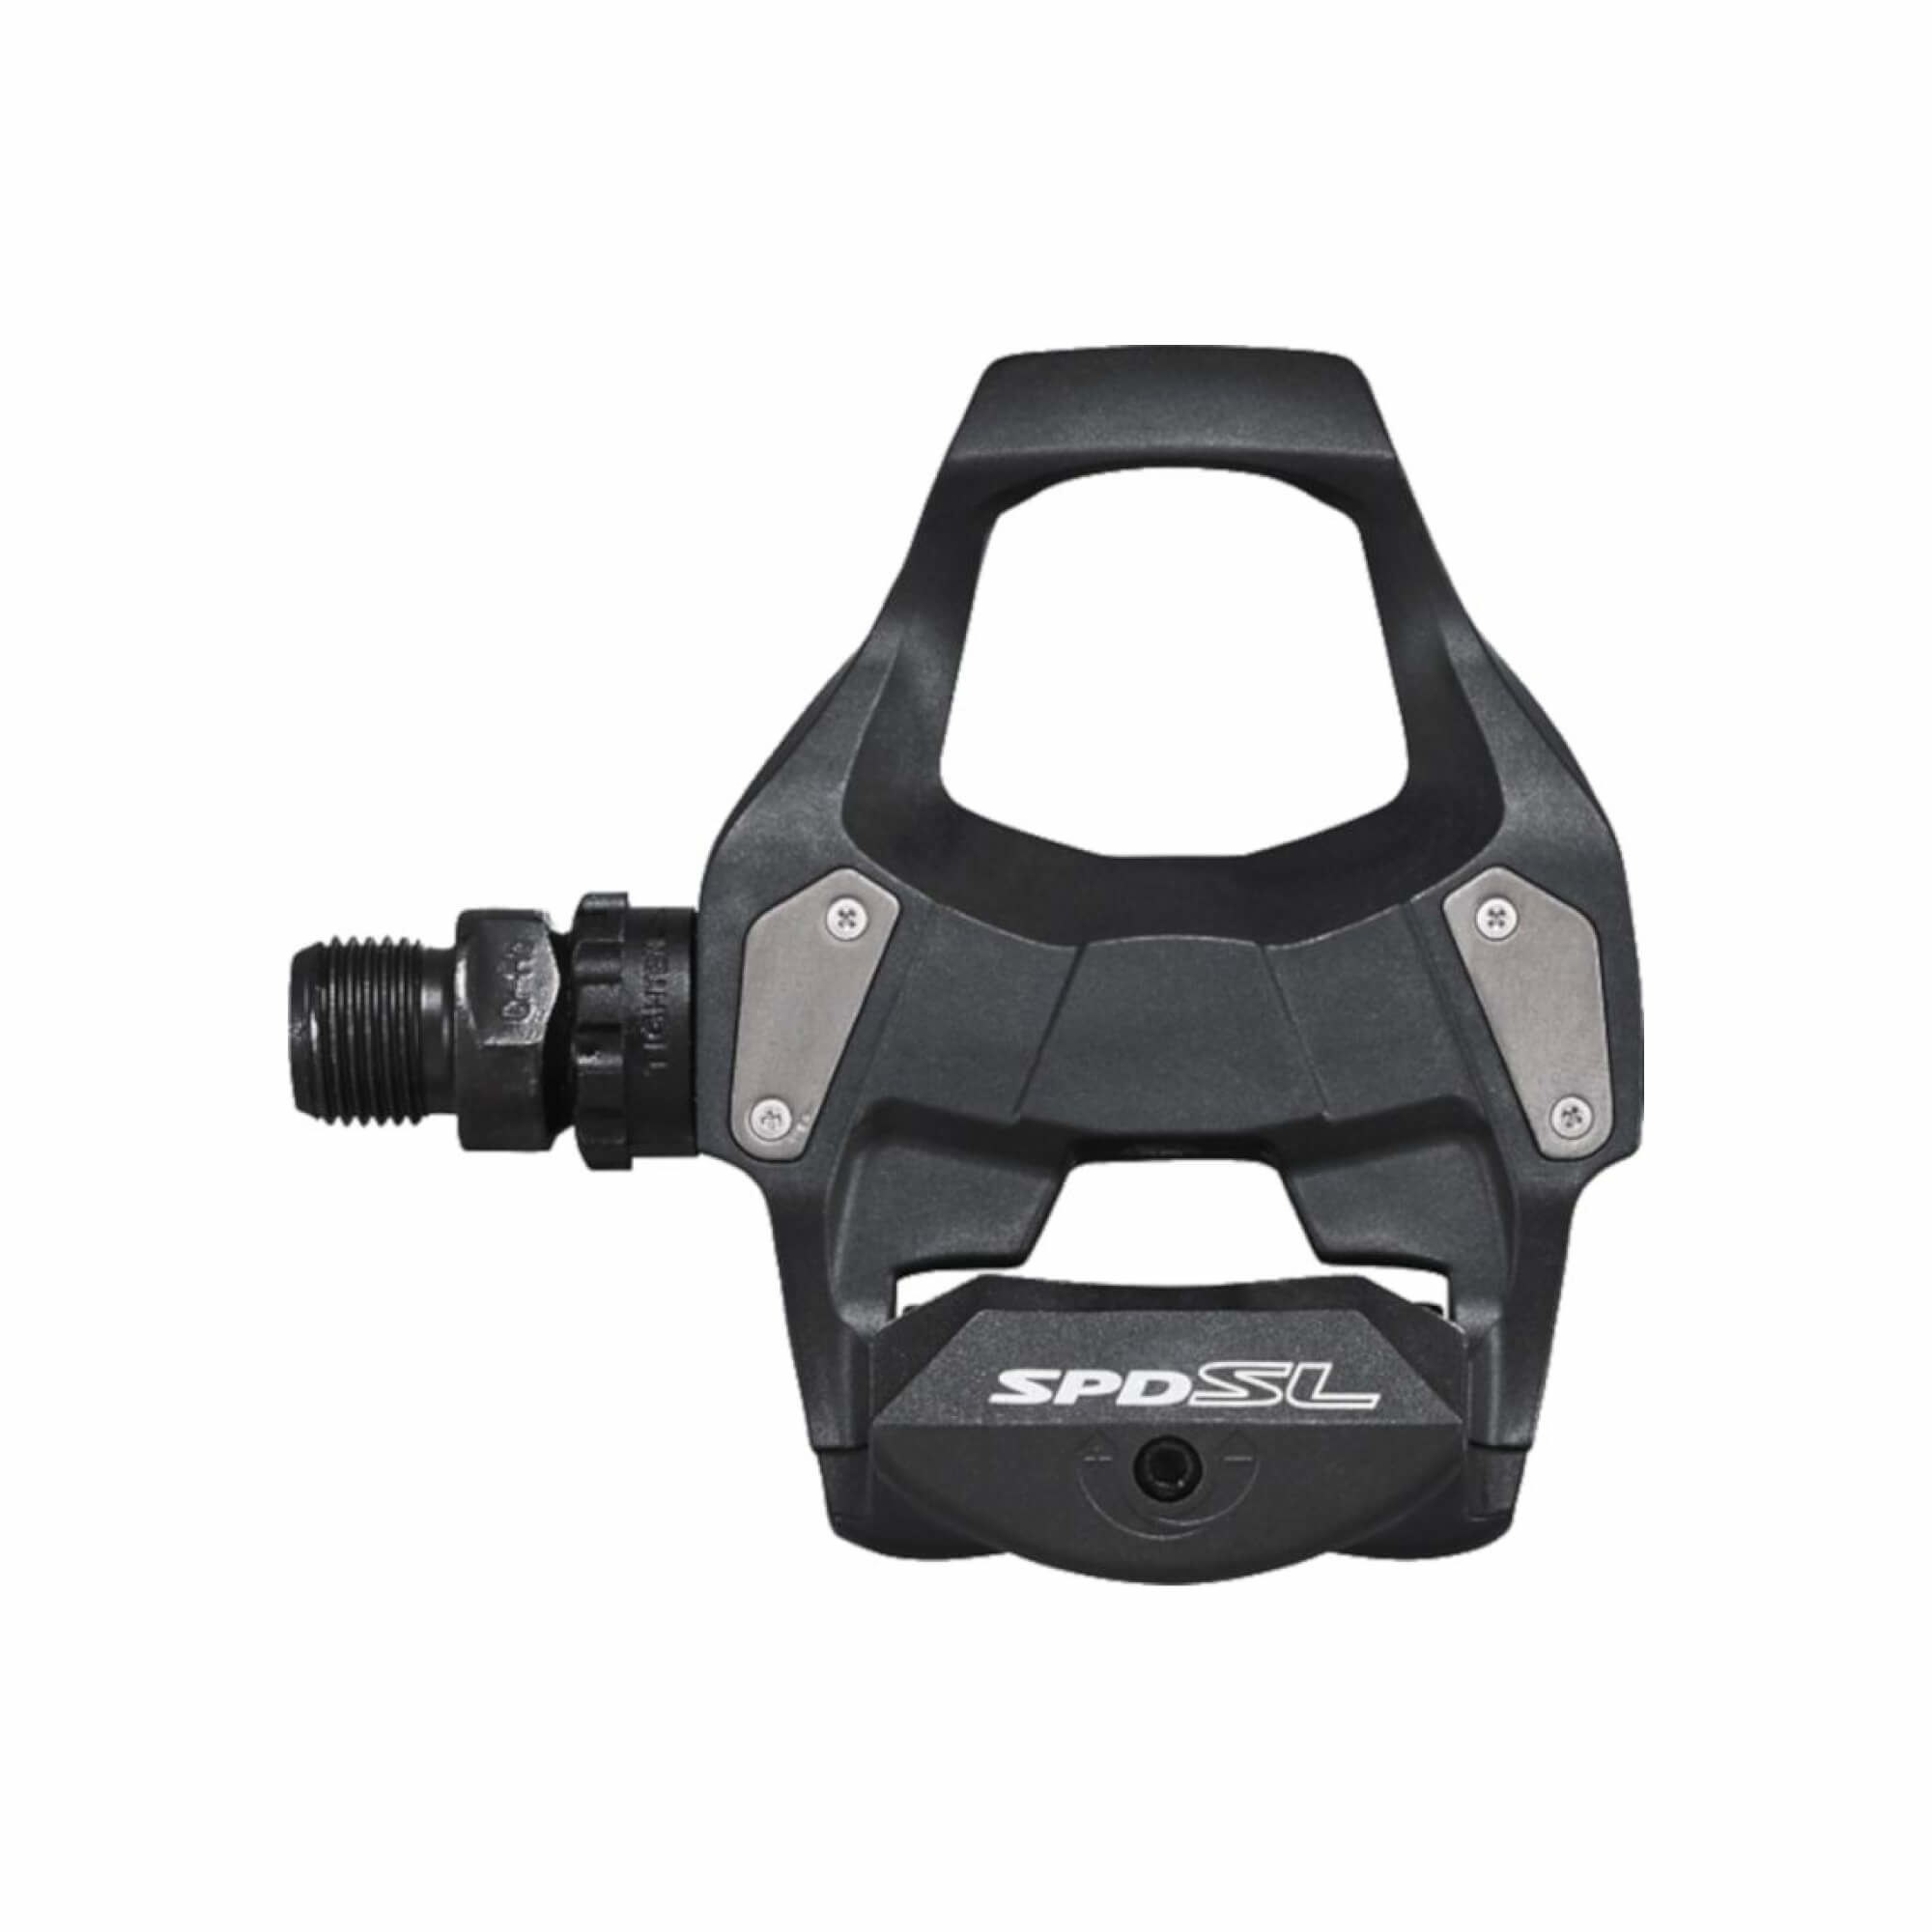 PD-RS500 SPD-SL Pedals Black-2